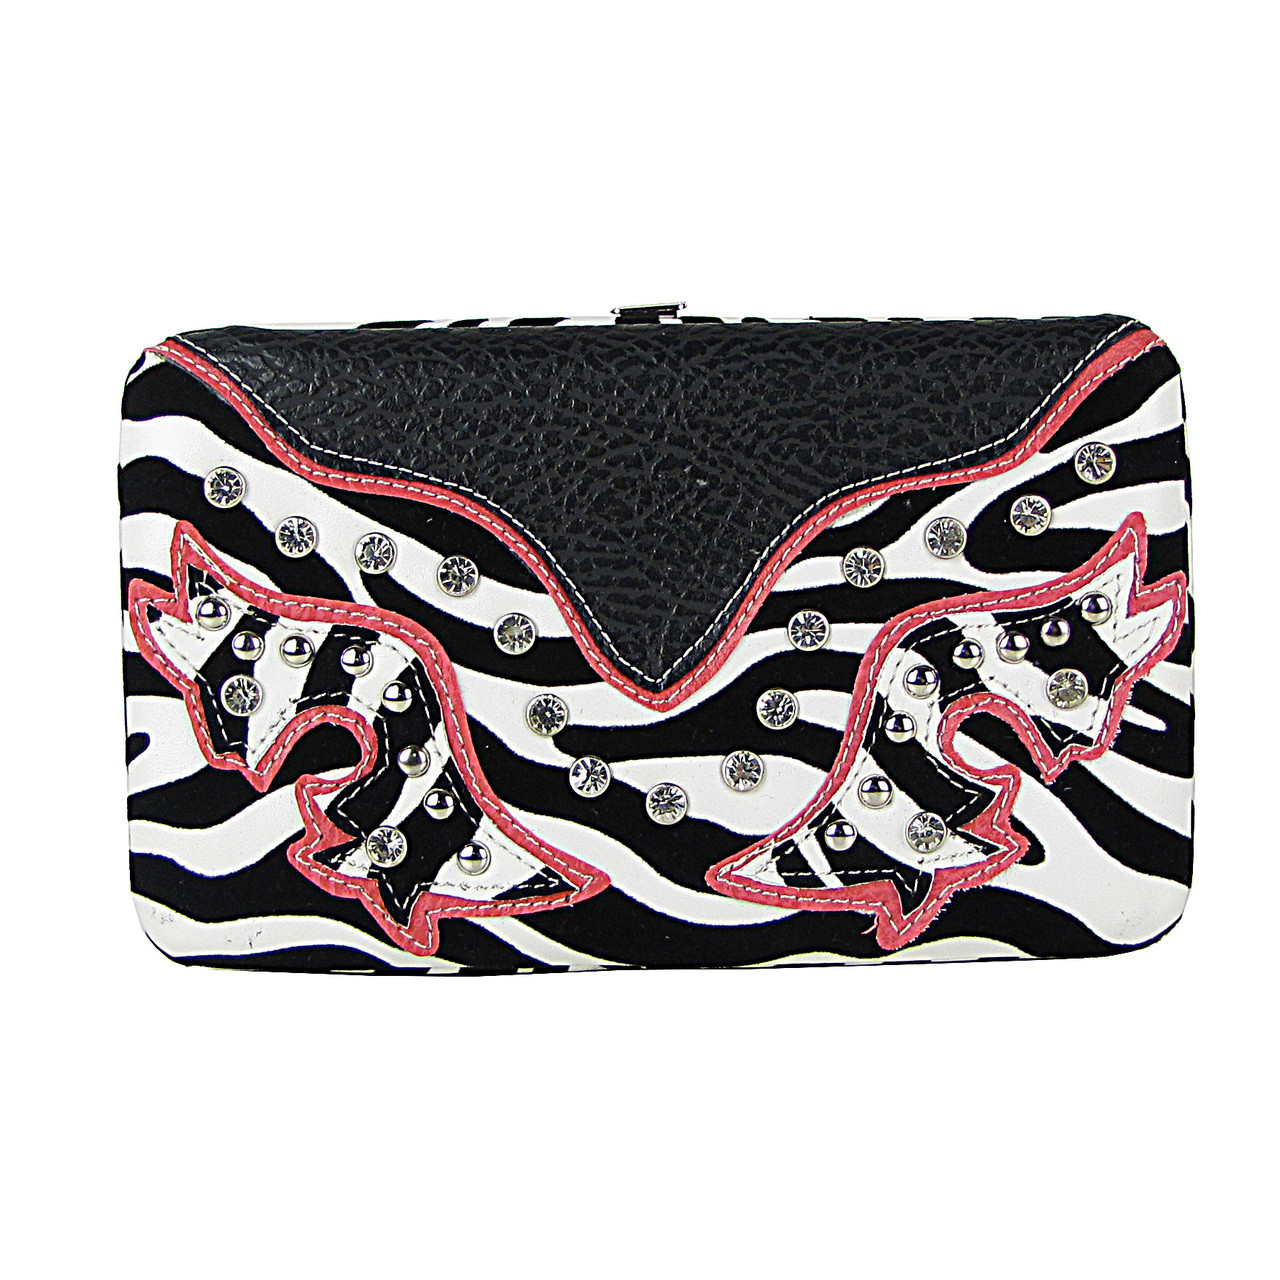 HOT PINK ZEBRA STUDDED RHINESTONE LOOK FLAT THICK WALLET FW2-12105HPK